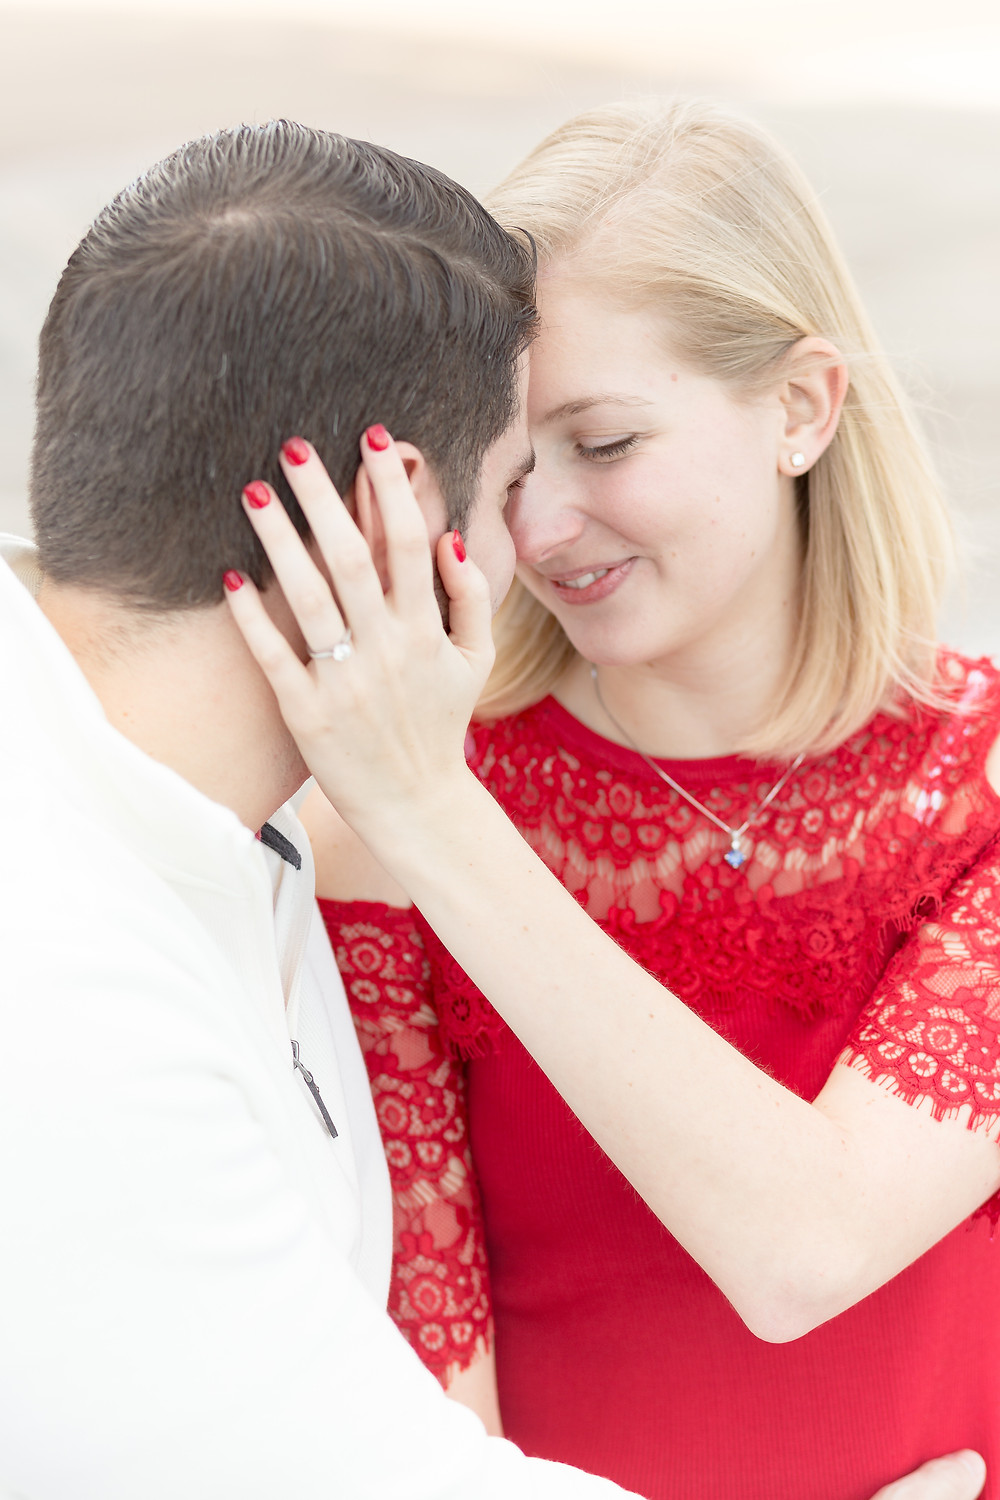 Disney Boardwalk Engagement Session: Megan & Ryan